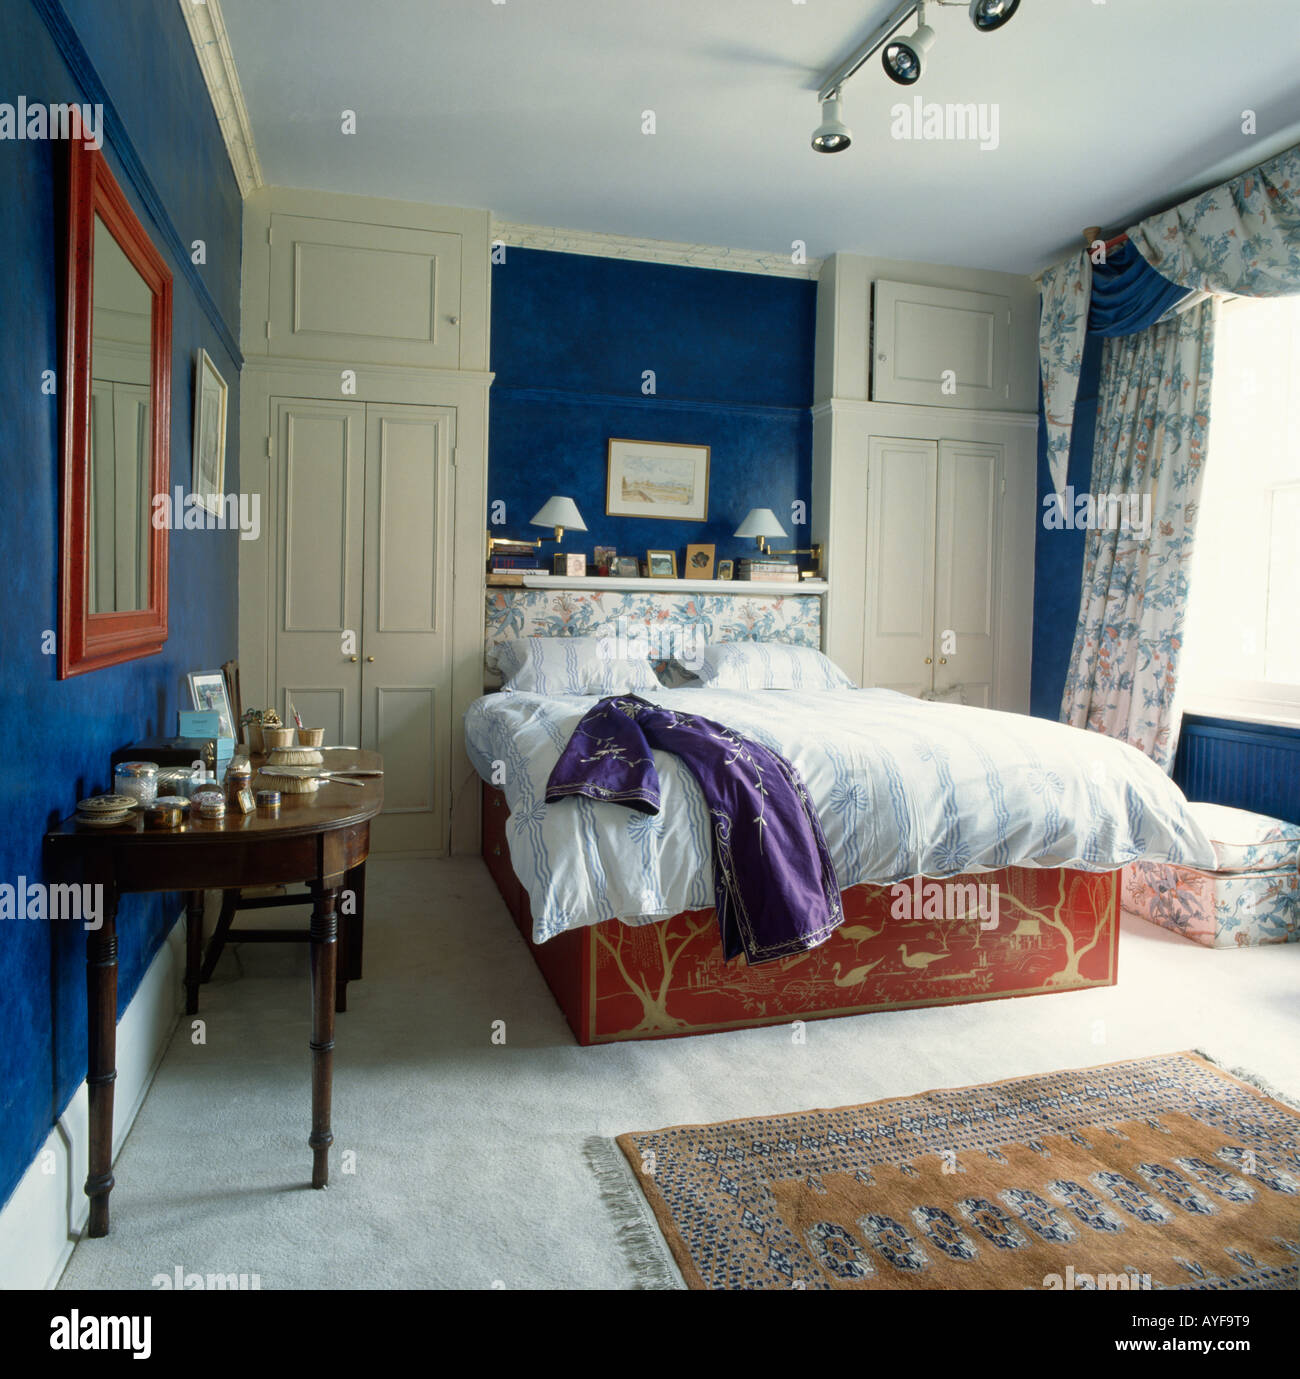 Blue bedroom with grey carpet and wall cupboards. Blue Bedroom With Grey Carpet And Wall Cupboards Stock Photo